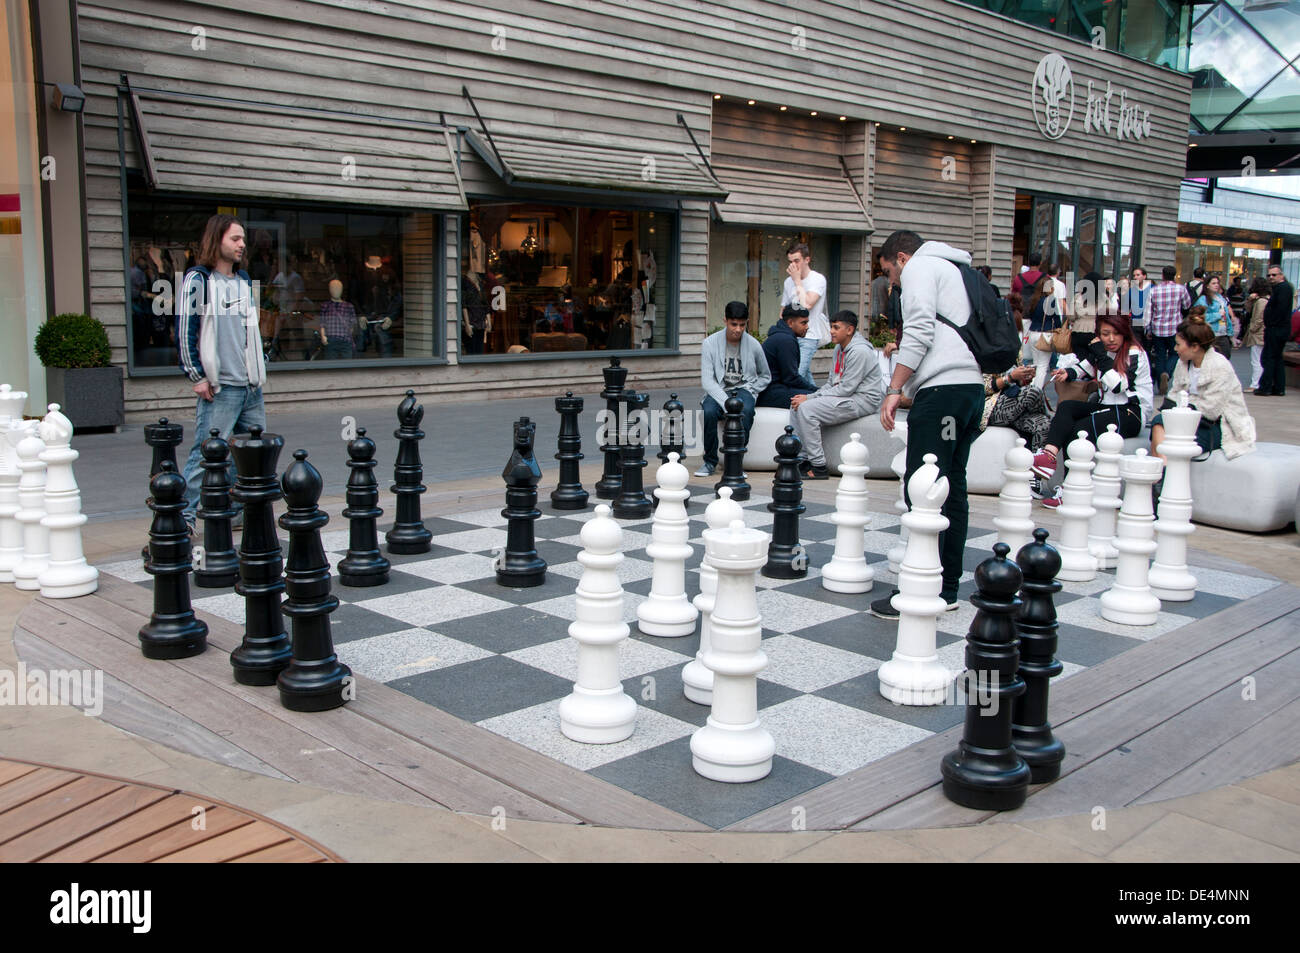 stratford westfield shopping centre playing chess with giant stock photo 60340385 alamy. Black Bedroom Furniture Sets. Home Design Ideas